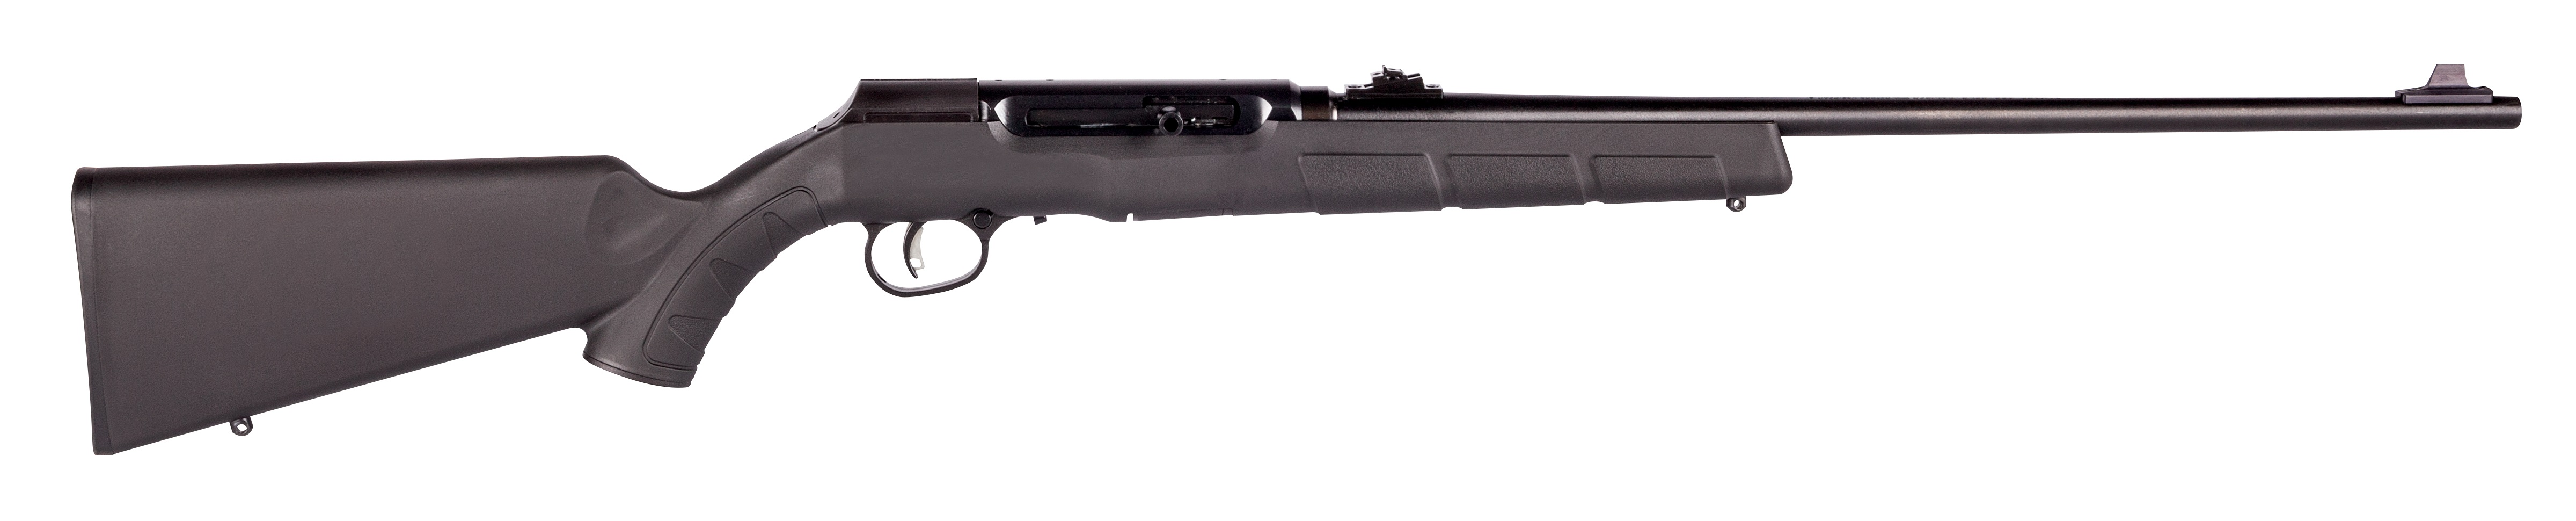 Savage's new A22 semi-auto rifle chambered in .22LR.